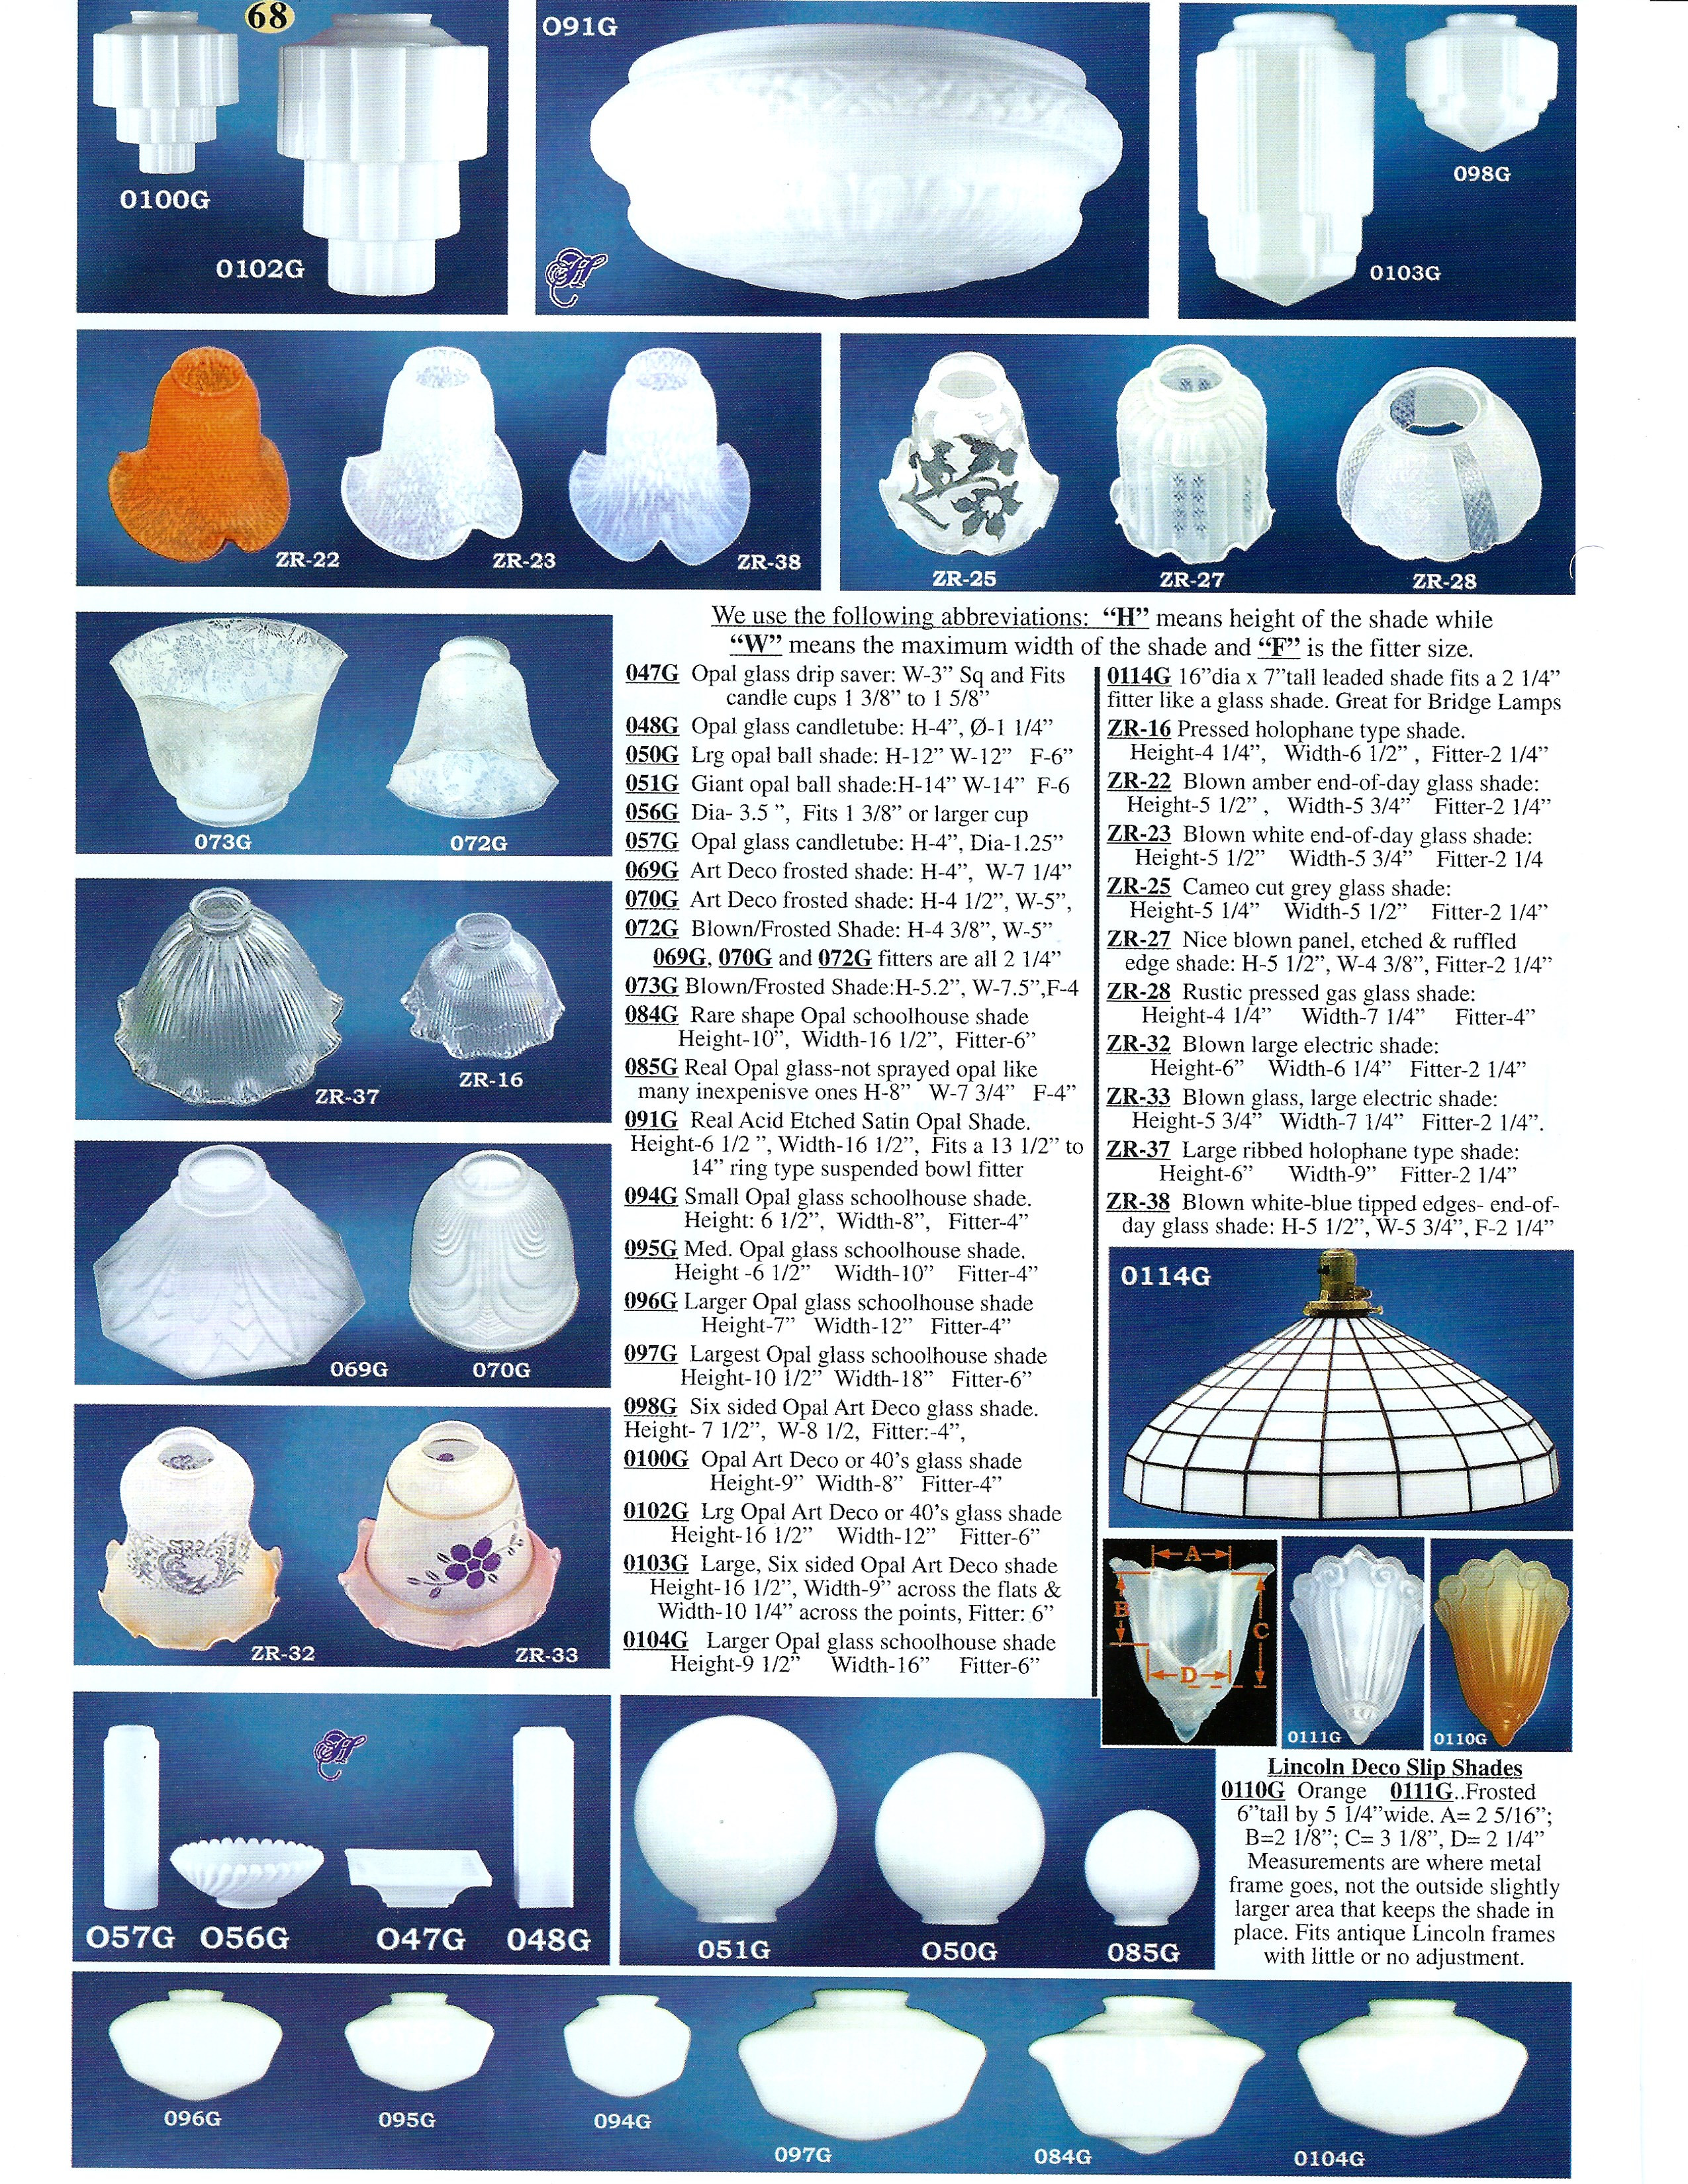 Catalog page 94